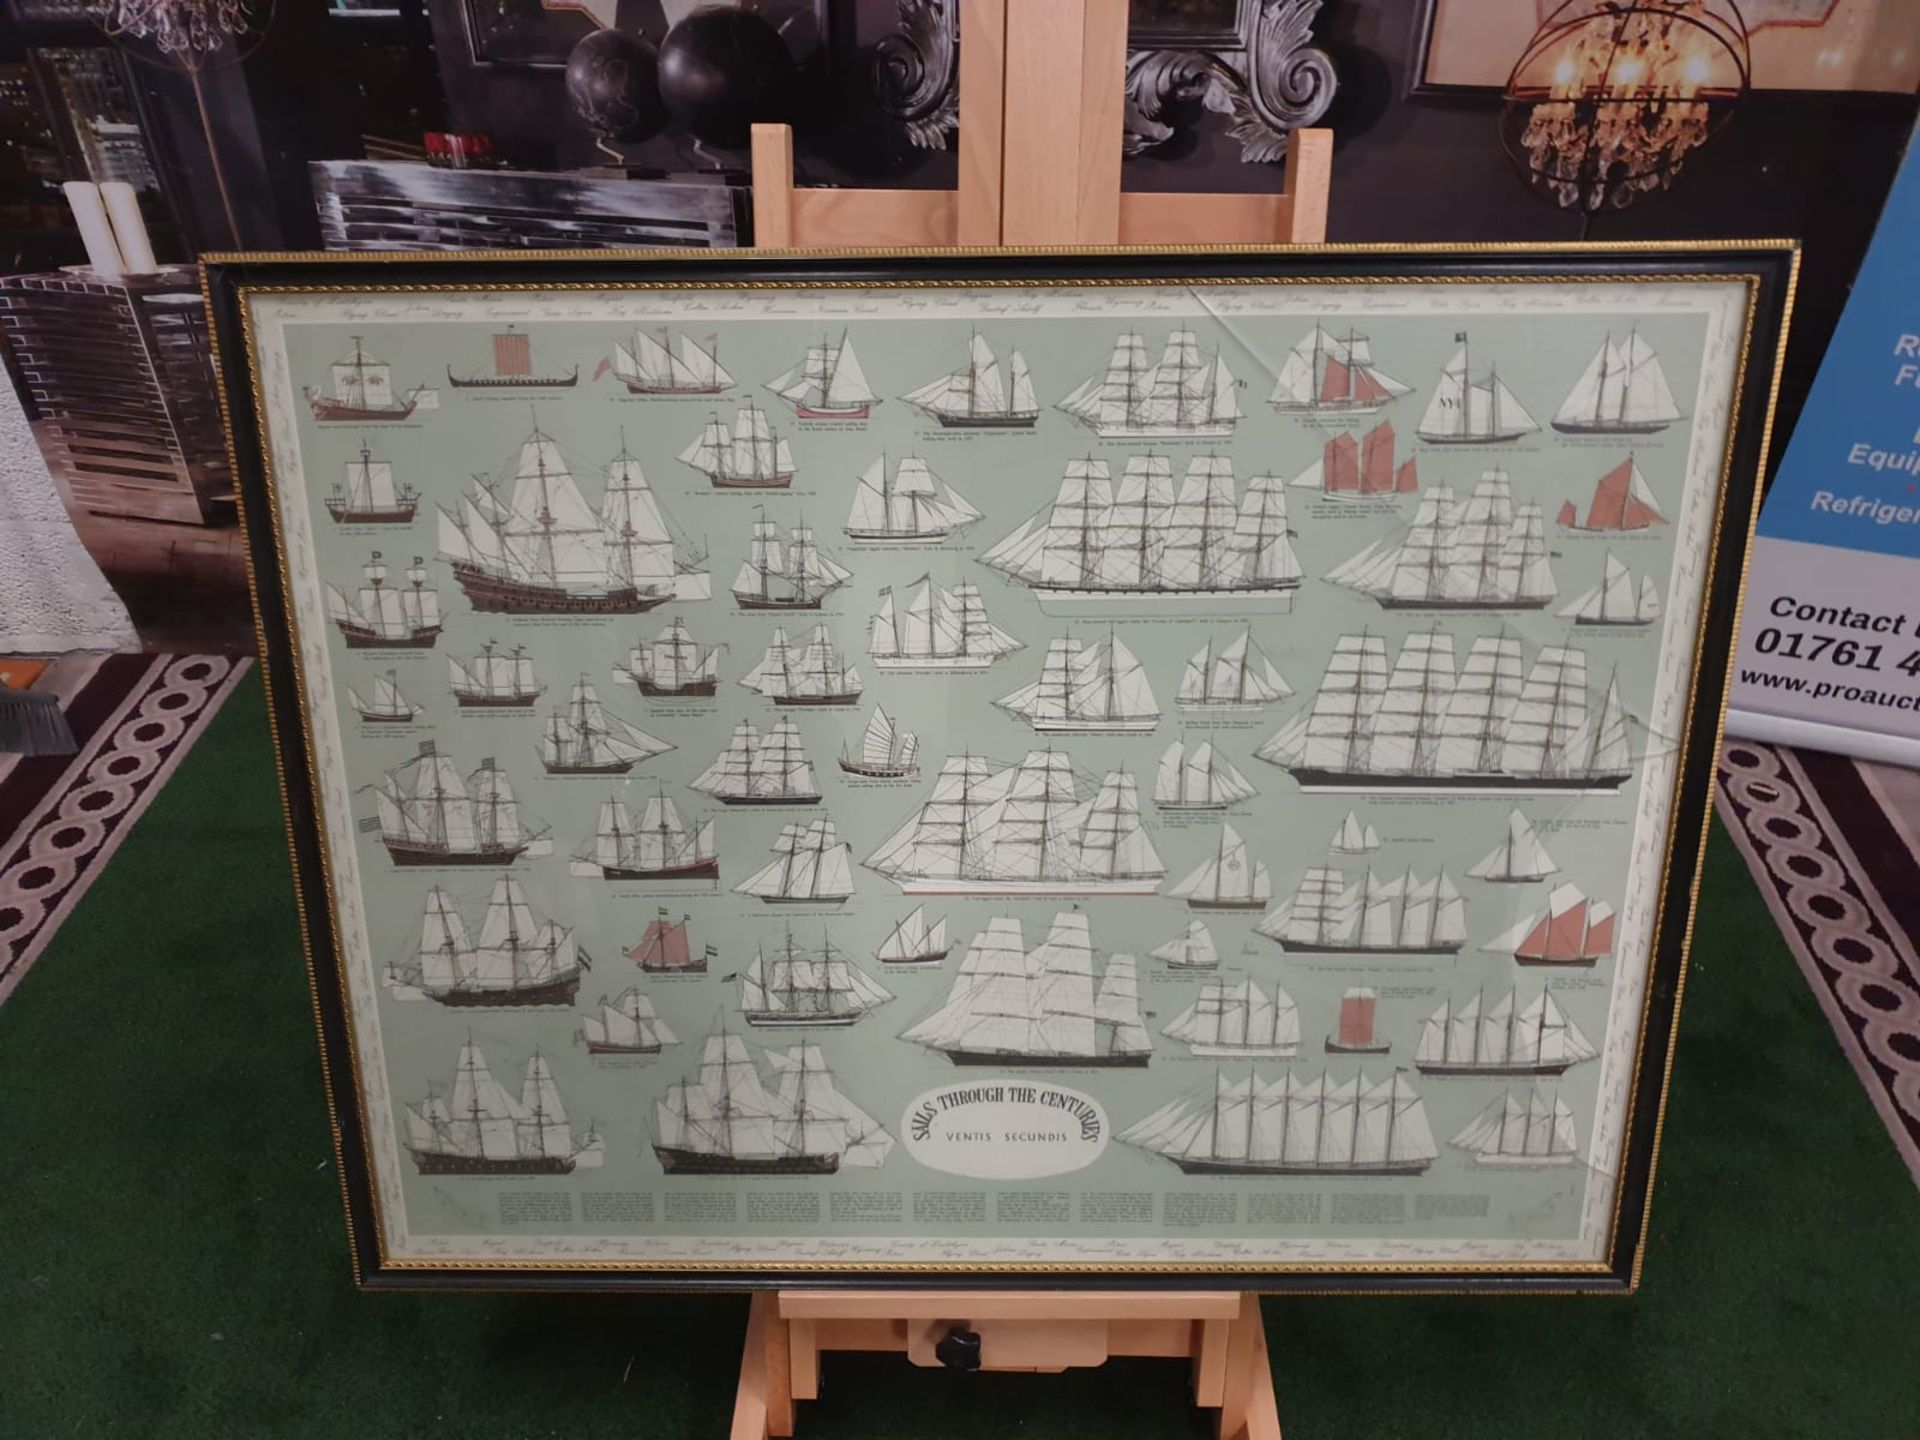 Ventis Secundis' or Sails Through The Centuries, Roman to 1926, framed colour print This spectacular